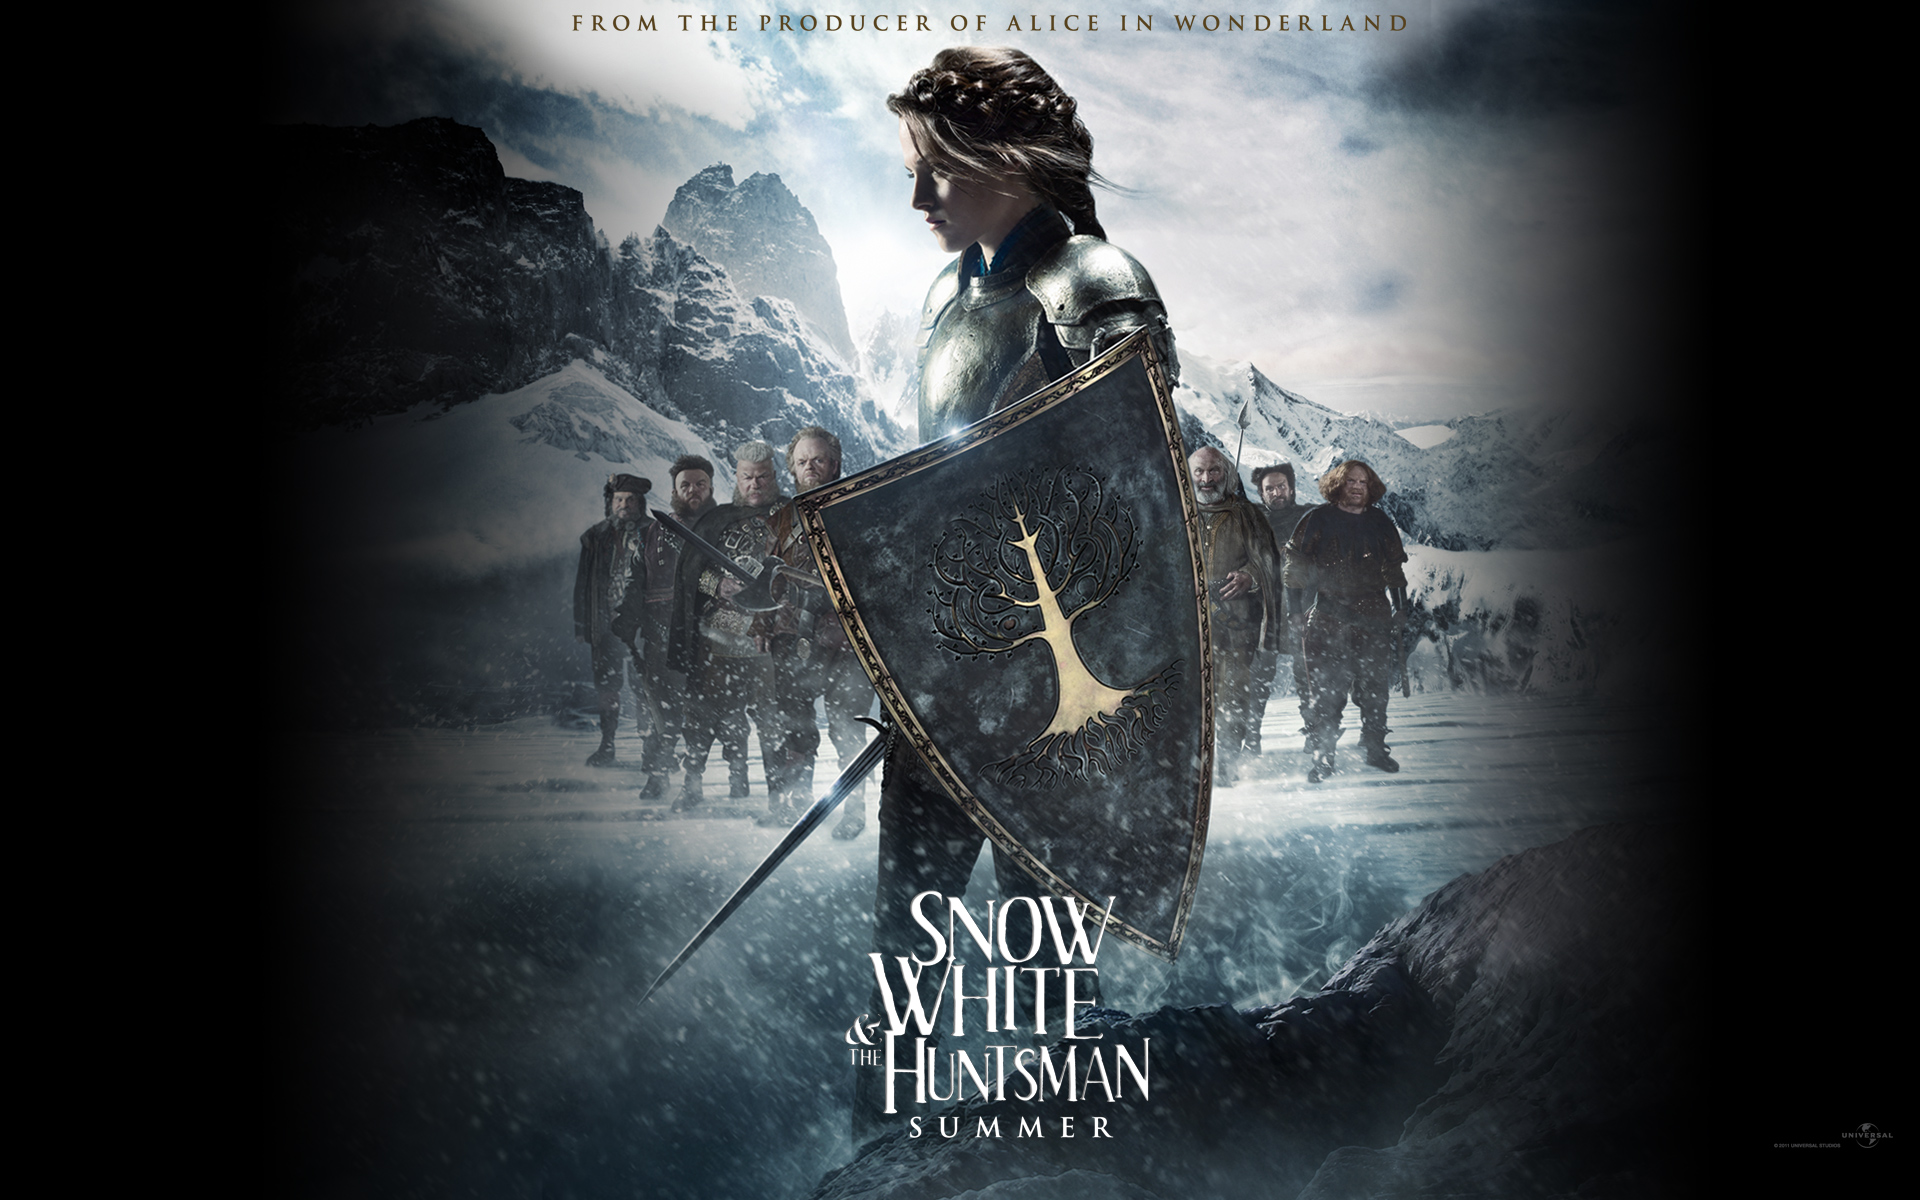 review snow white and the huntsman Snow white and the huntsman / the huntsman: winter's war: 2-movie collection blu-ray review no review exists for this particular release, however, it exists for the other following editions/regions/countries.